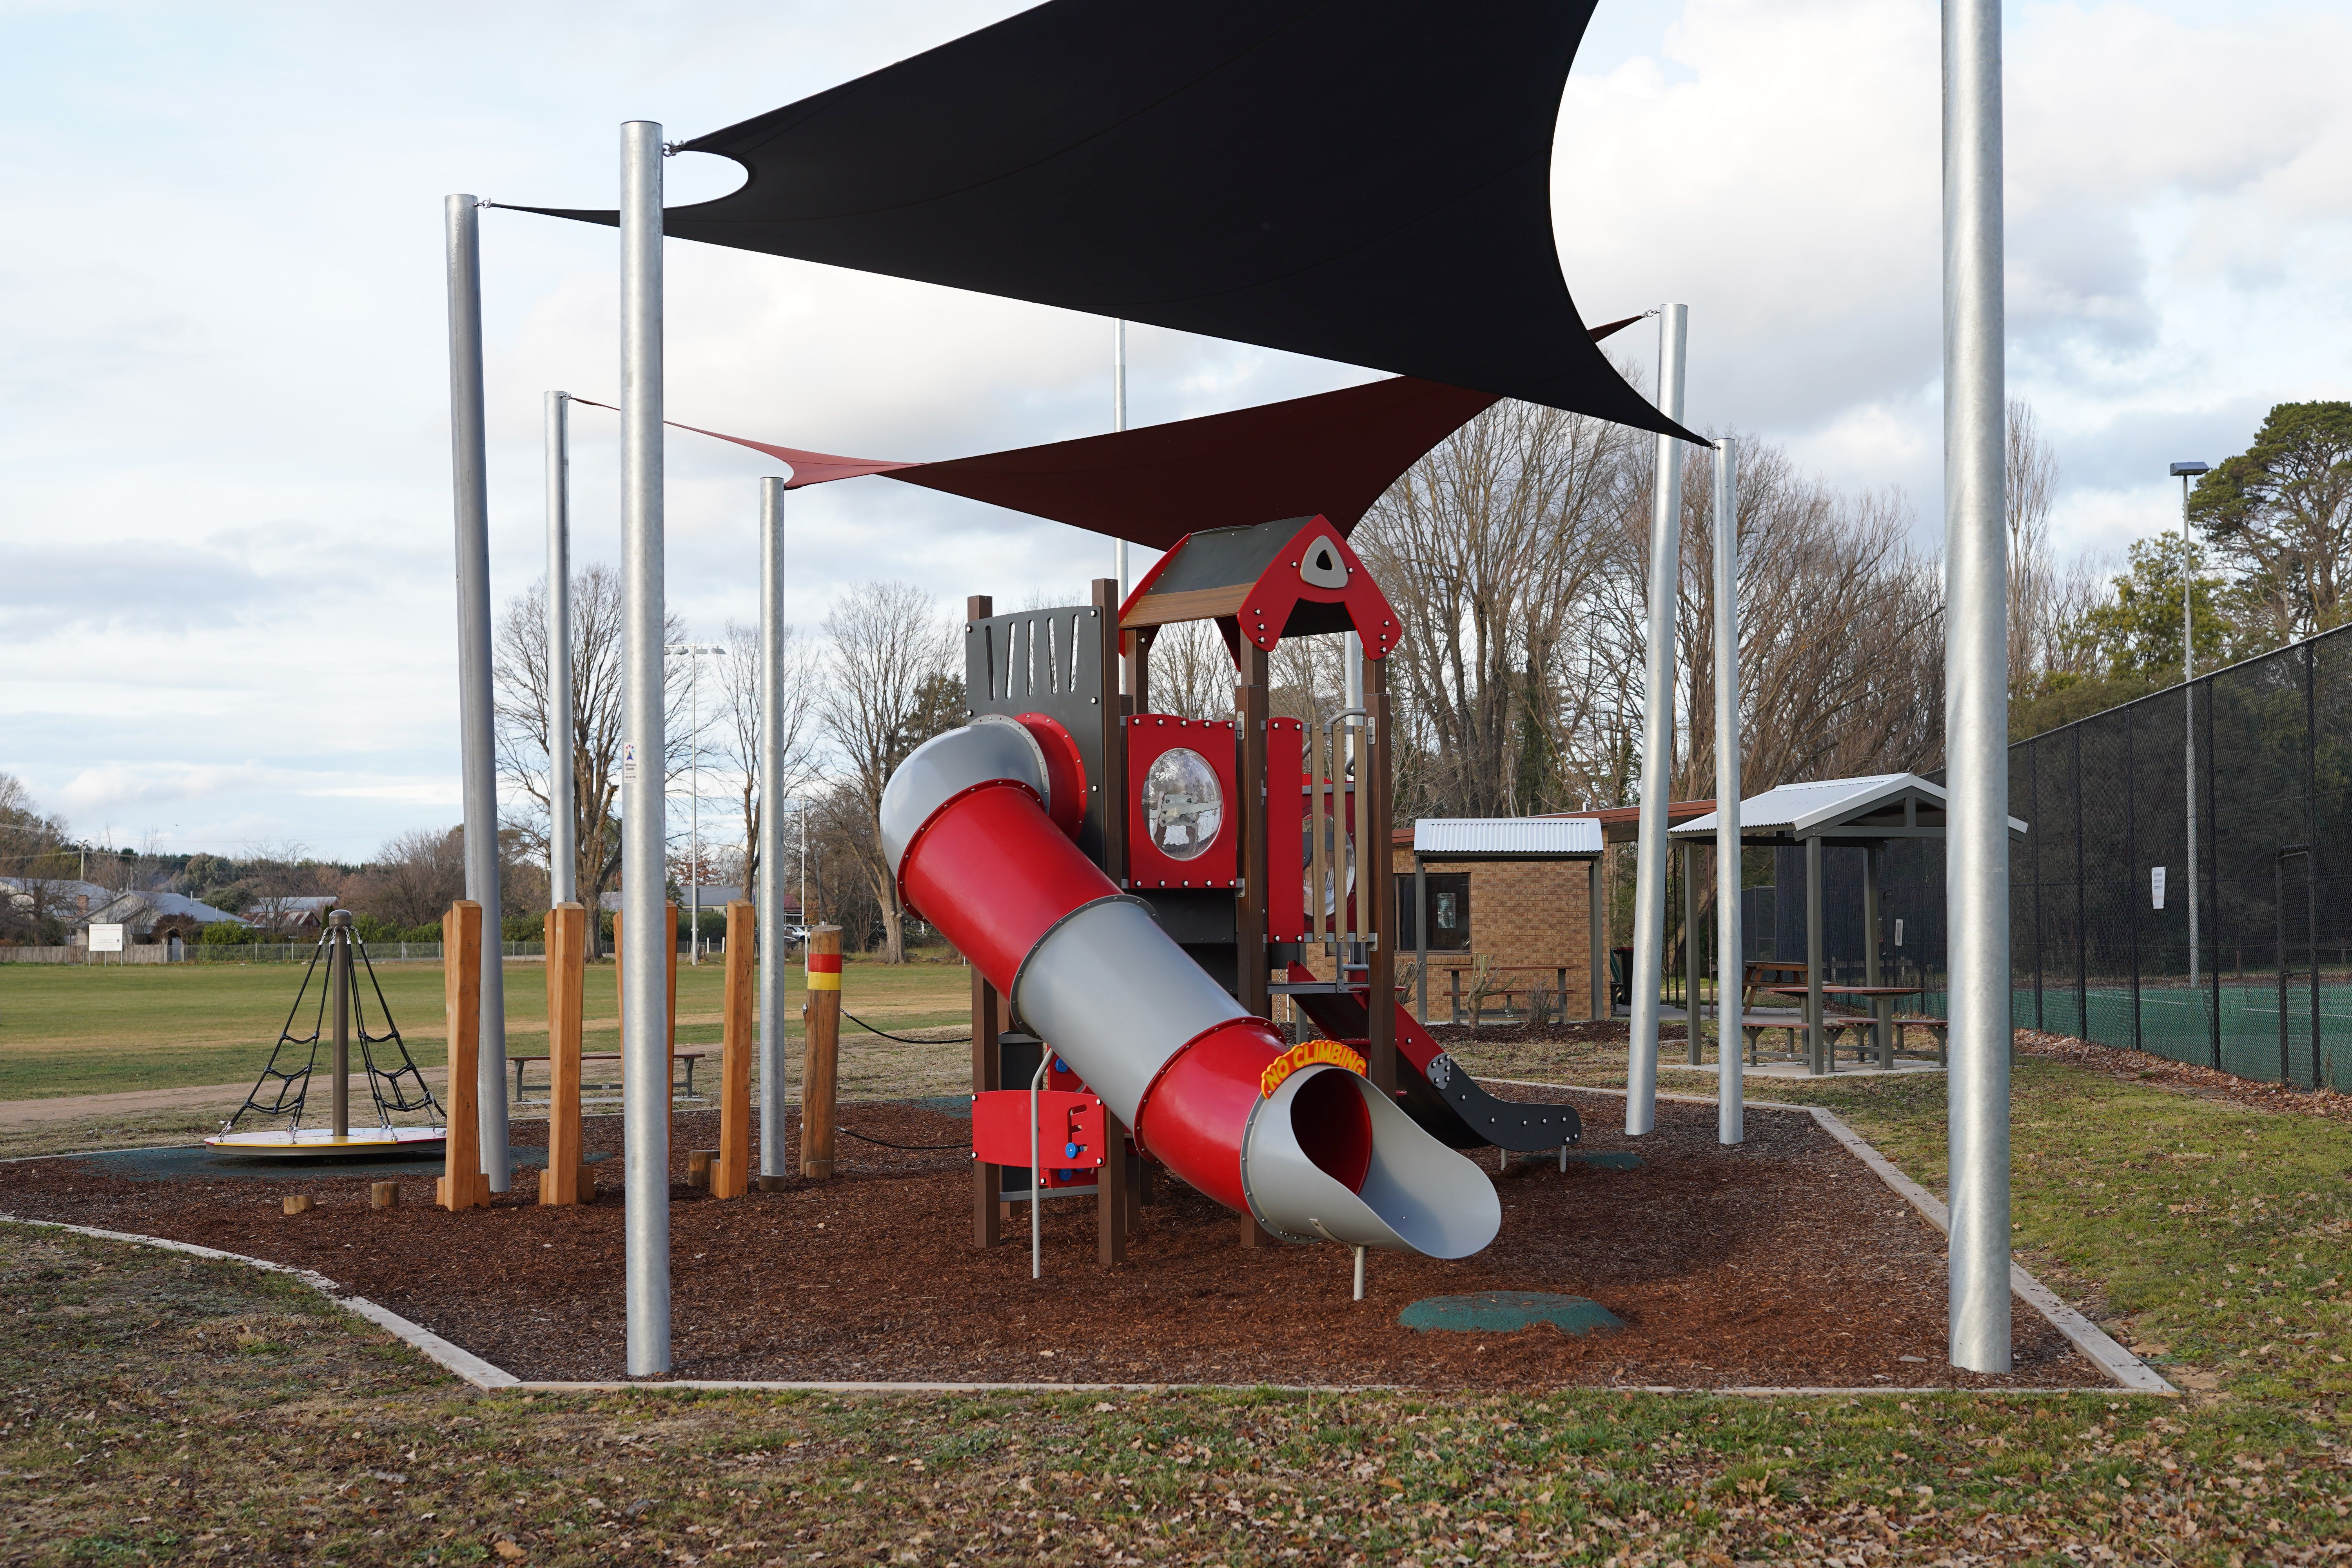 Braidwood Recreation Grounds and Playground - Accommodation Sydney